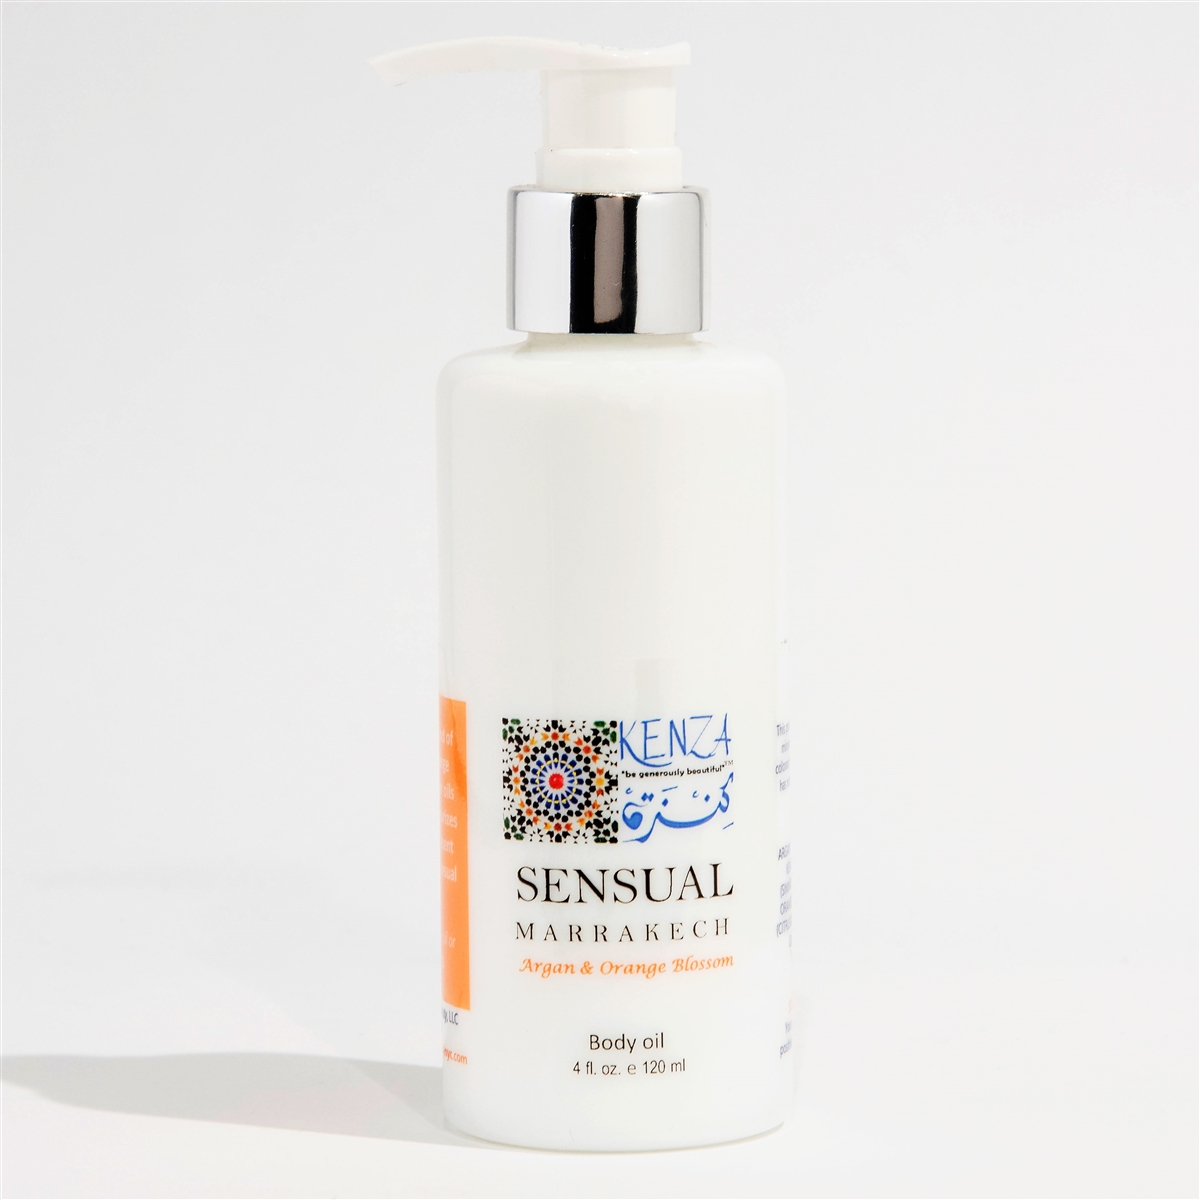 KENZA SENSUAL Marrakech Body Oil 4 oz